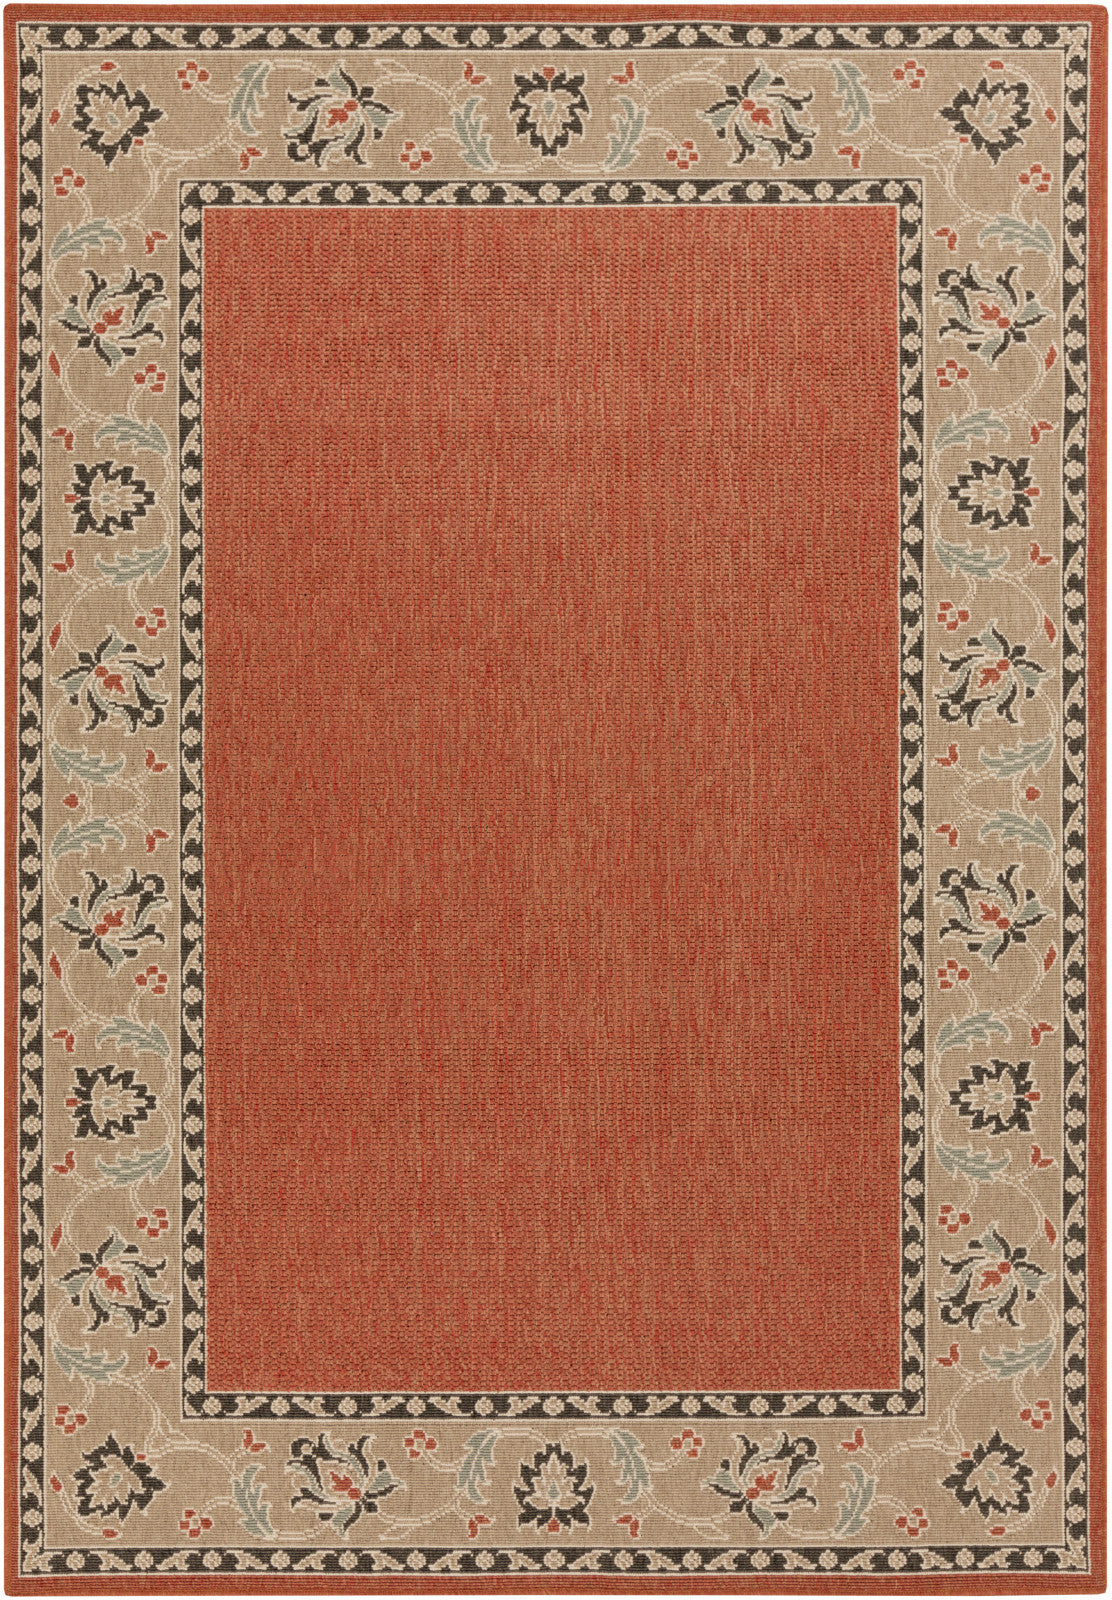 Surya Alfresco ALF-9598 Area Rug